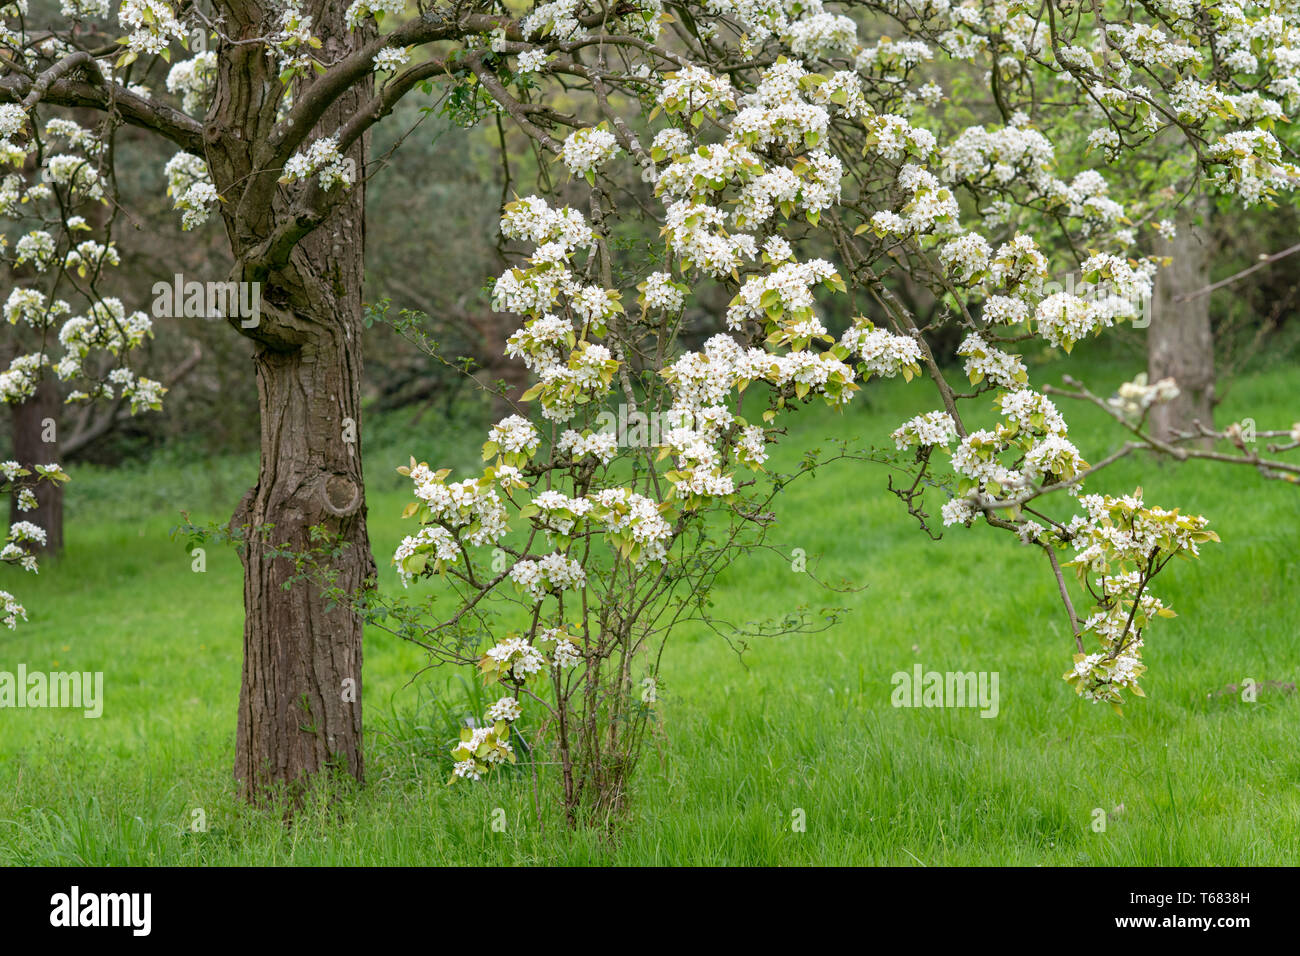 x pyrocydonia danielii tree in blossom in spring. UK. Pear Quince hybrid fruit tree. UK - Stock Image